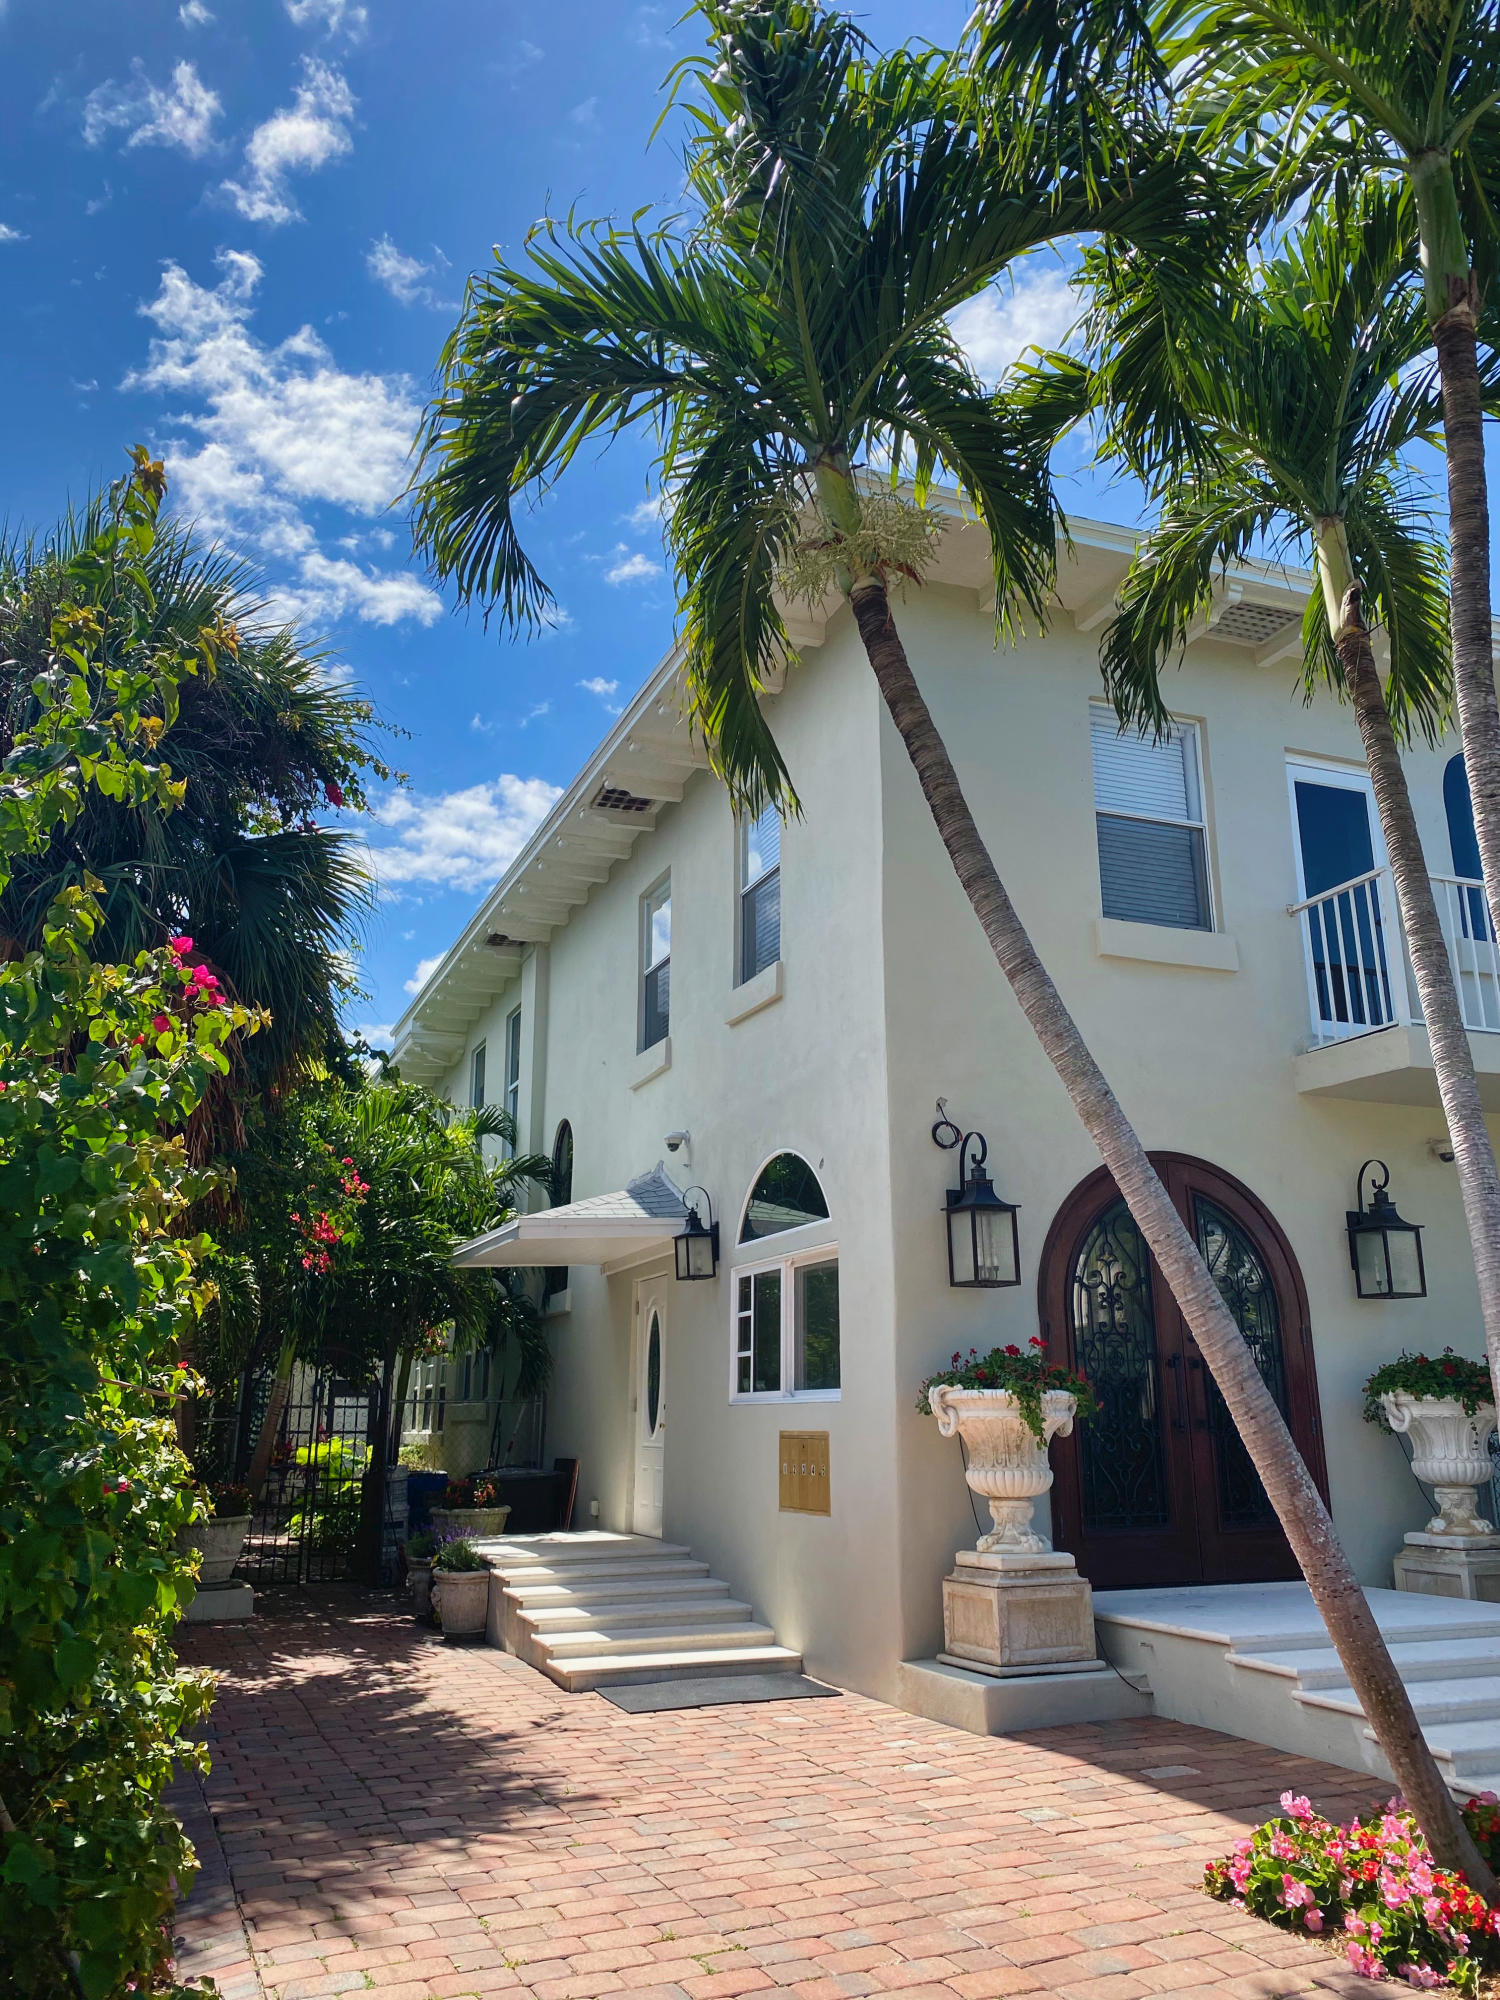 258 Seminole Avenue #Cottage - 33480 - FL - Palm Beach